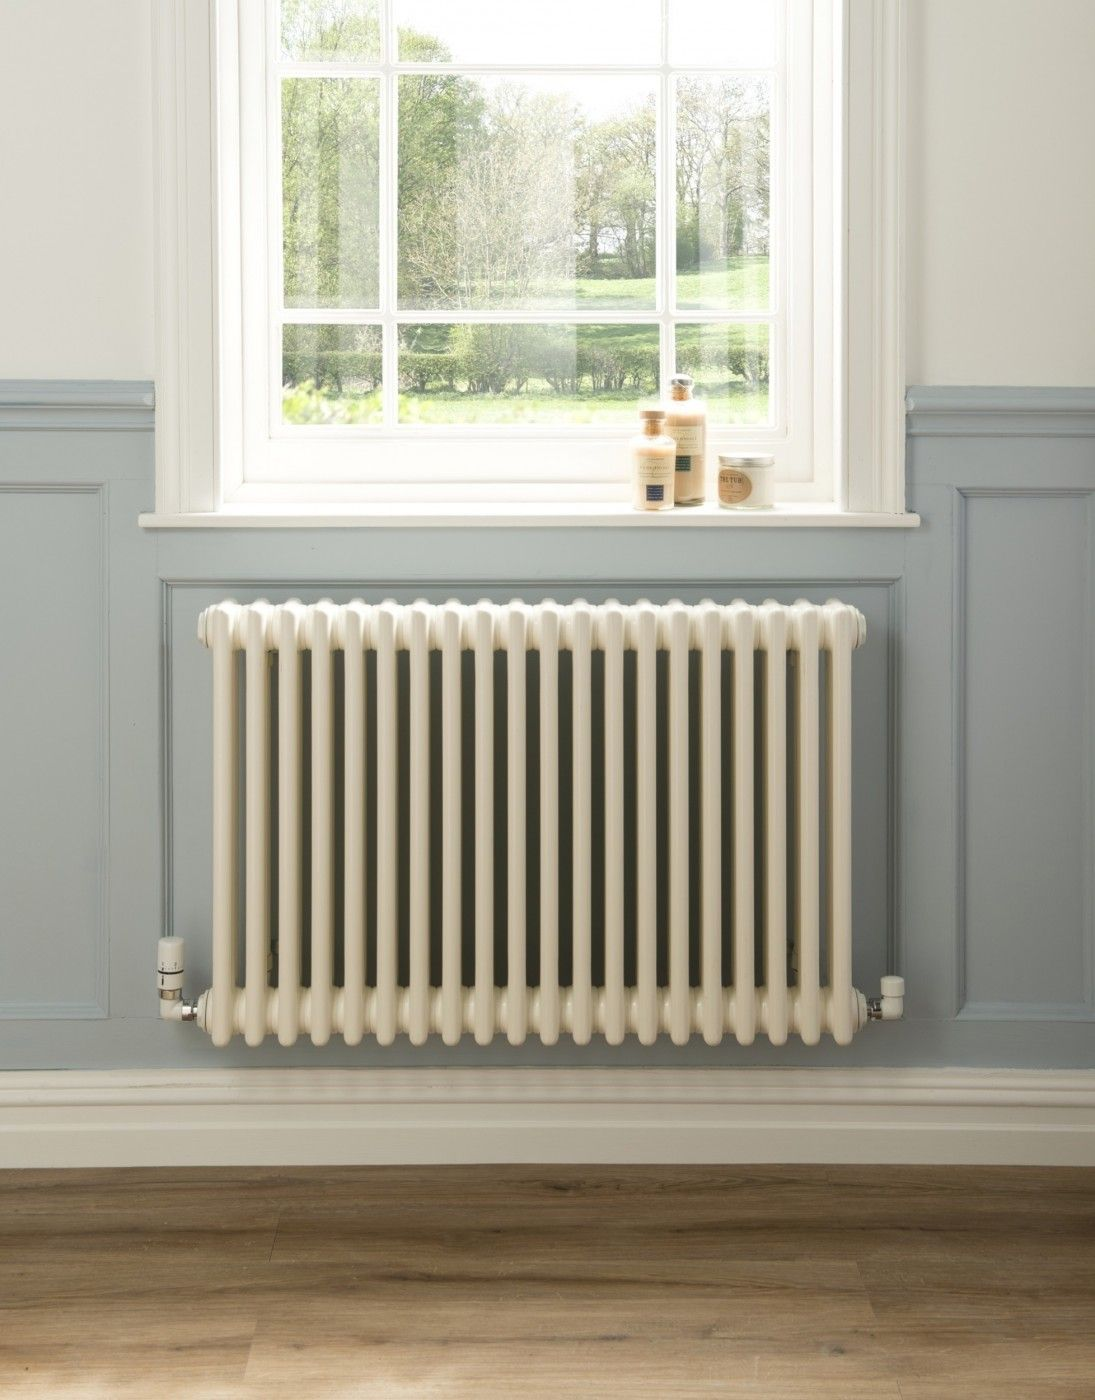 Romana Steel Multi-Column Radiator by Iconic Radiators. Supplied in both  stock and made-to-order sizes, this traditional design offers a multitude  of sizes, ...